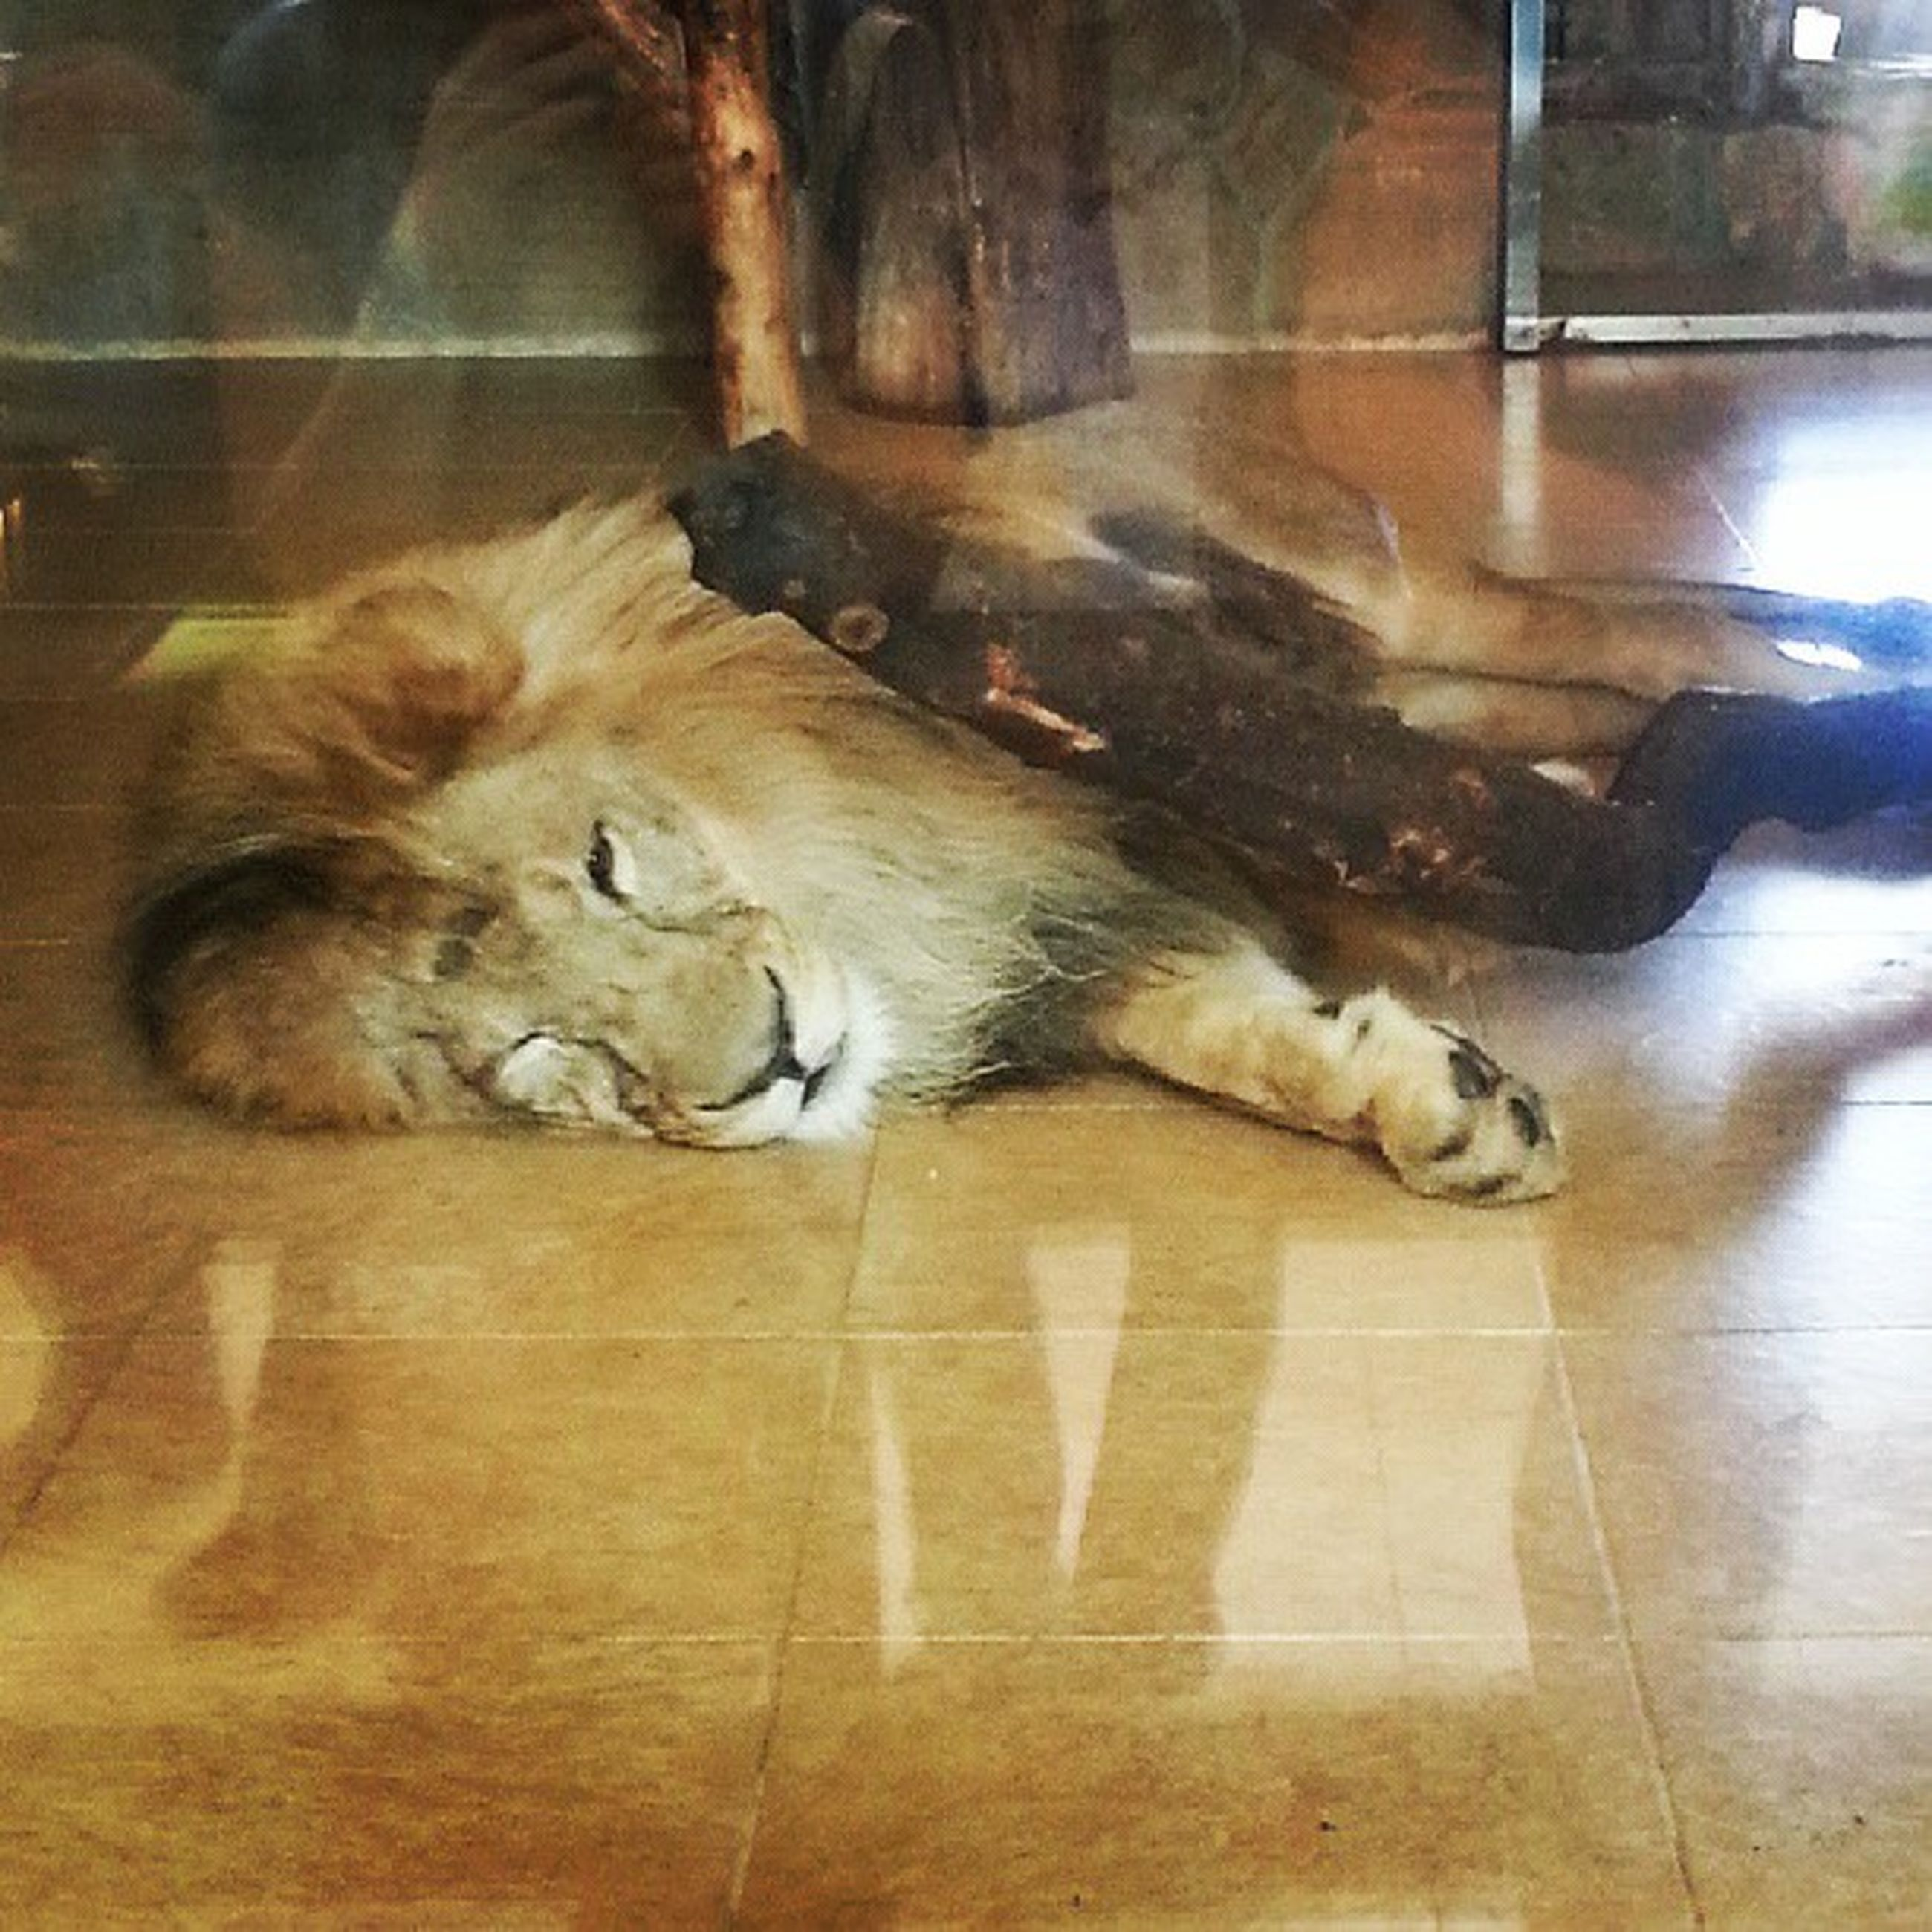 animal themes, mammal, indoors, domestic animals, one animal, pets, domestic cat, cat, relaxation, sleeping, lying down, feline, high angle view, resting, flooring, no people, animals in captivity, full length, two animals, floor